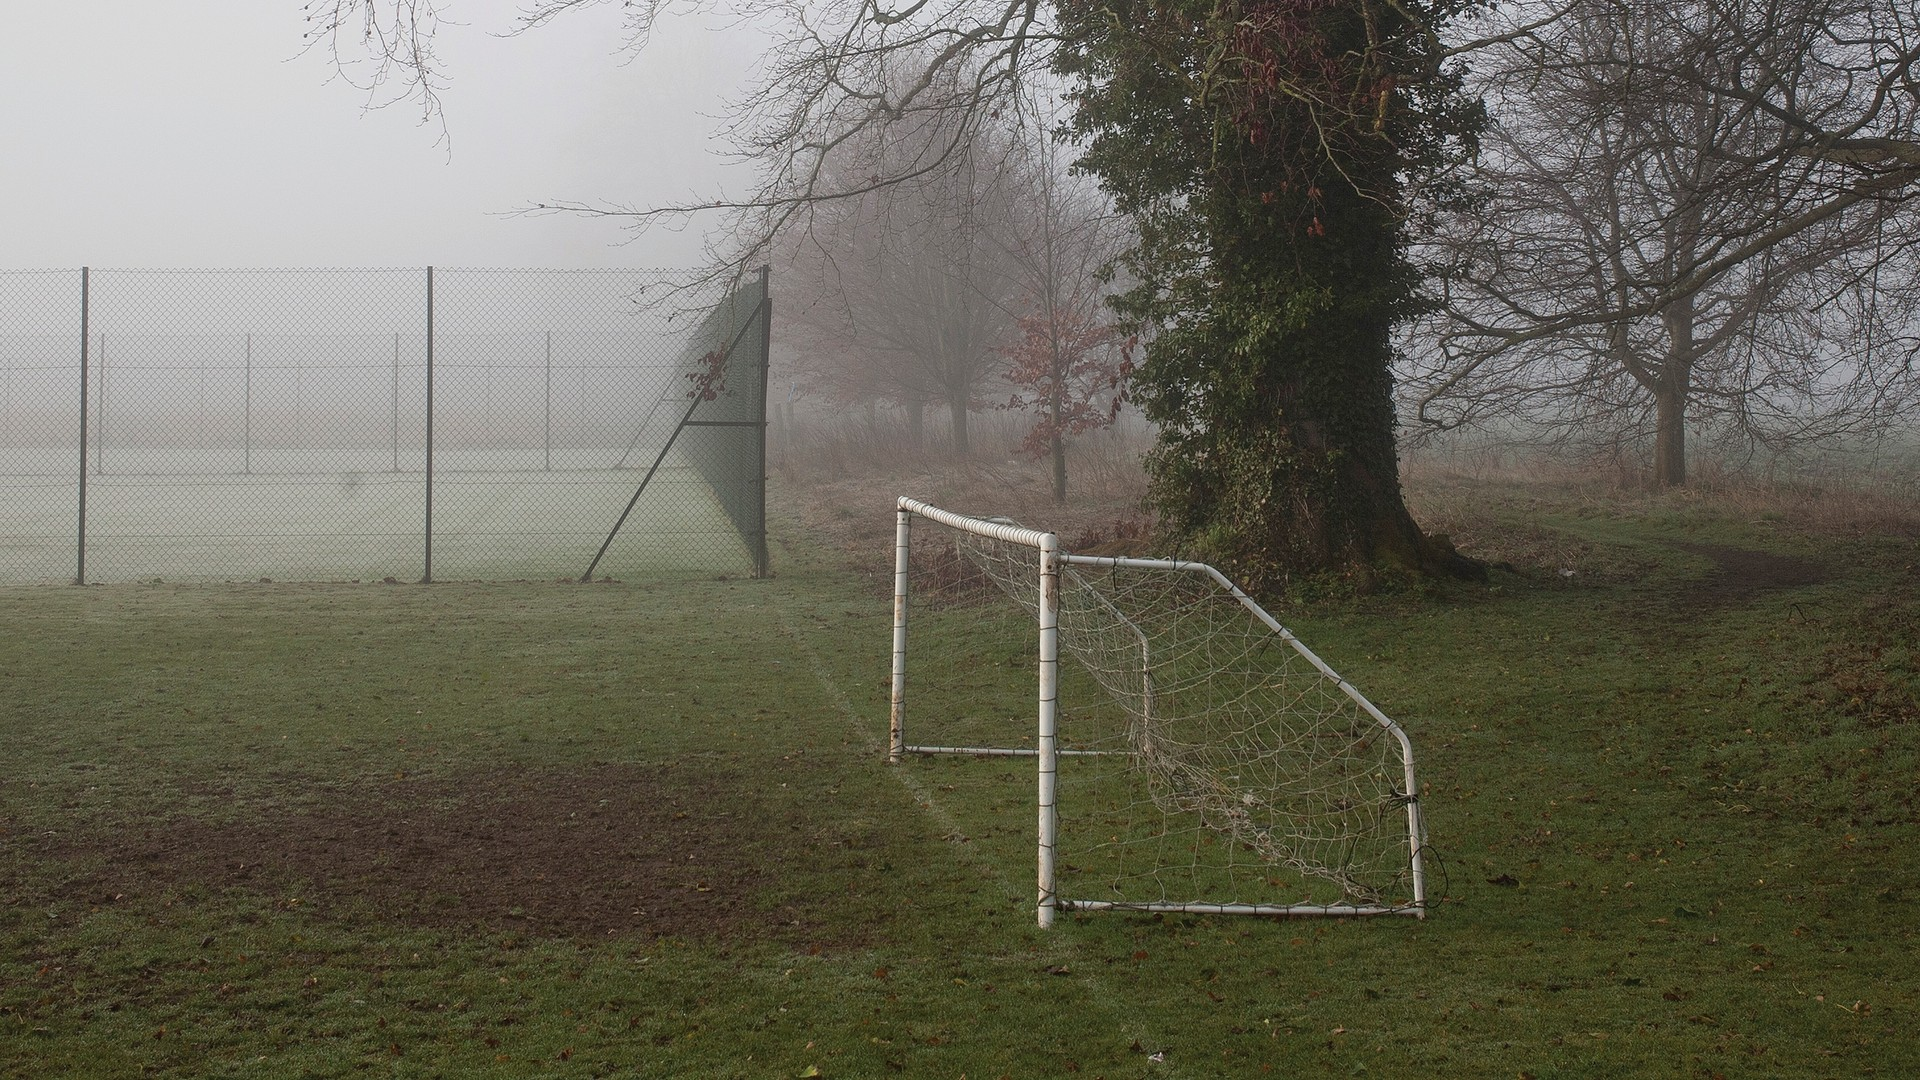 photograph of a soccer net